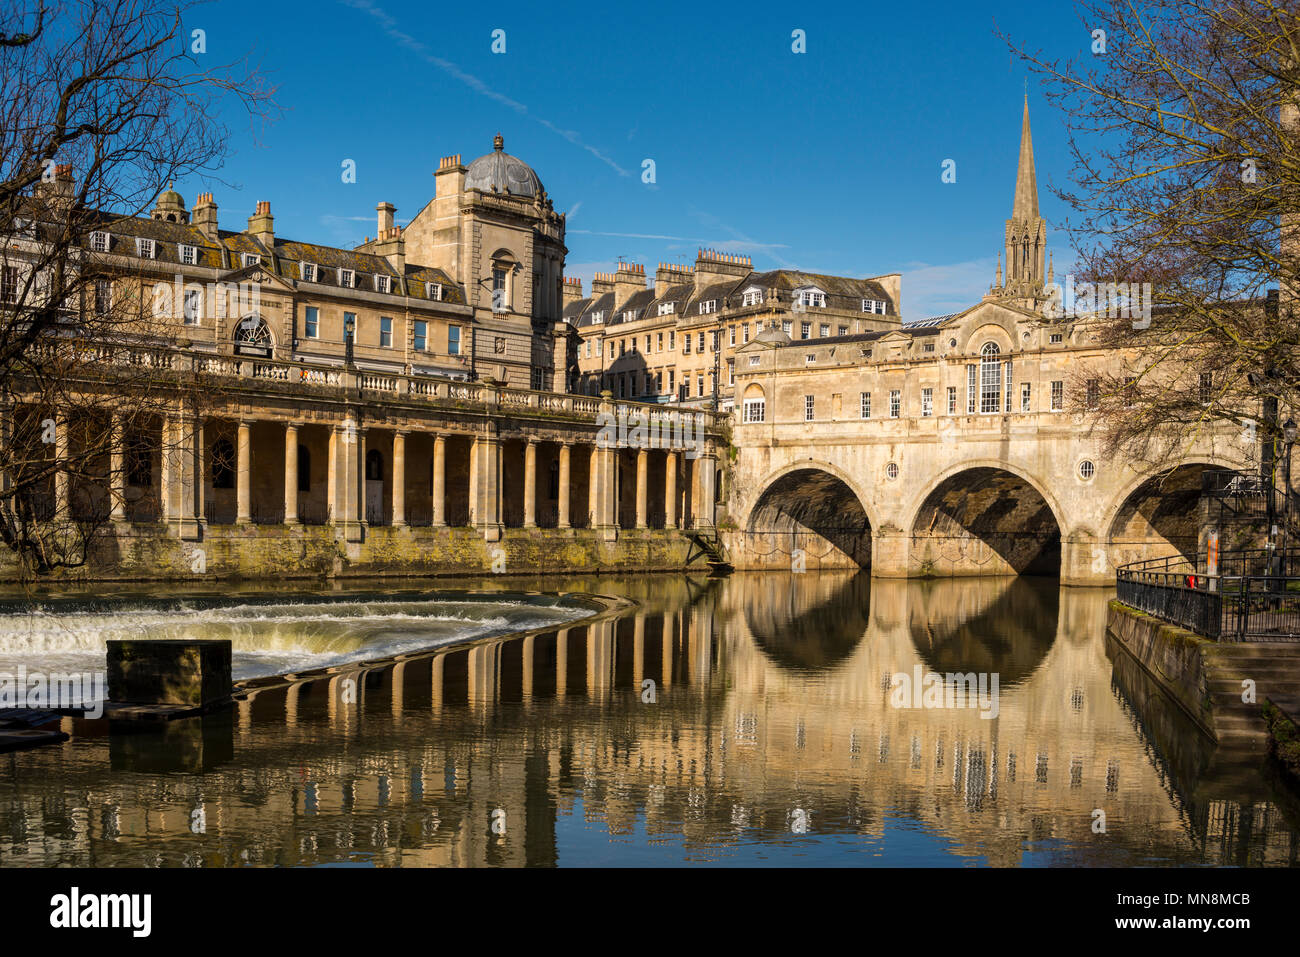 Cityscape of Bath depicting St Michael's Without Church, Pultney Bridge and River Avon, Somerset, UK - Stock Image